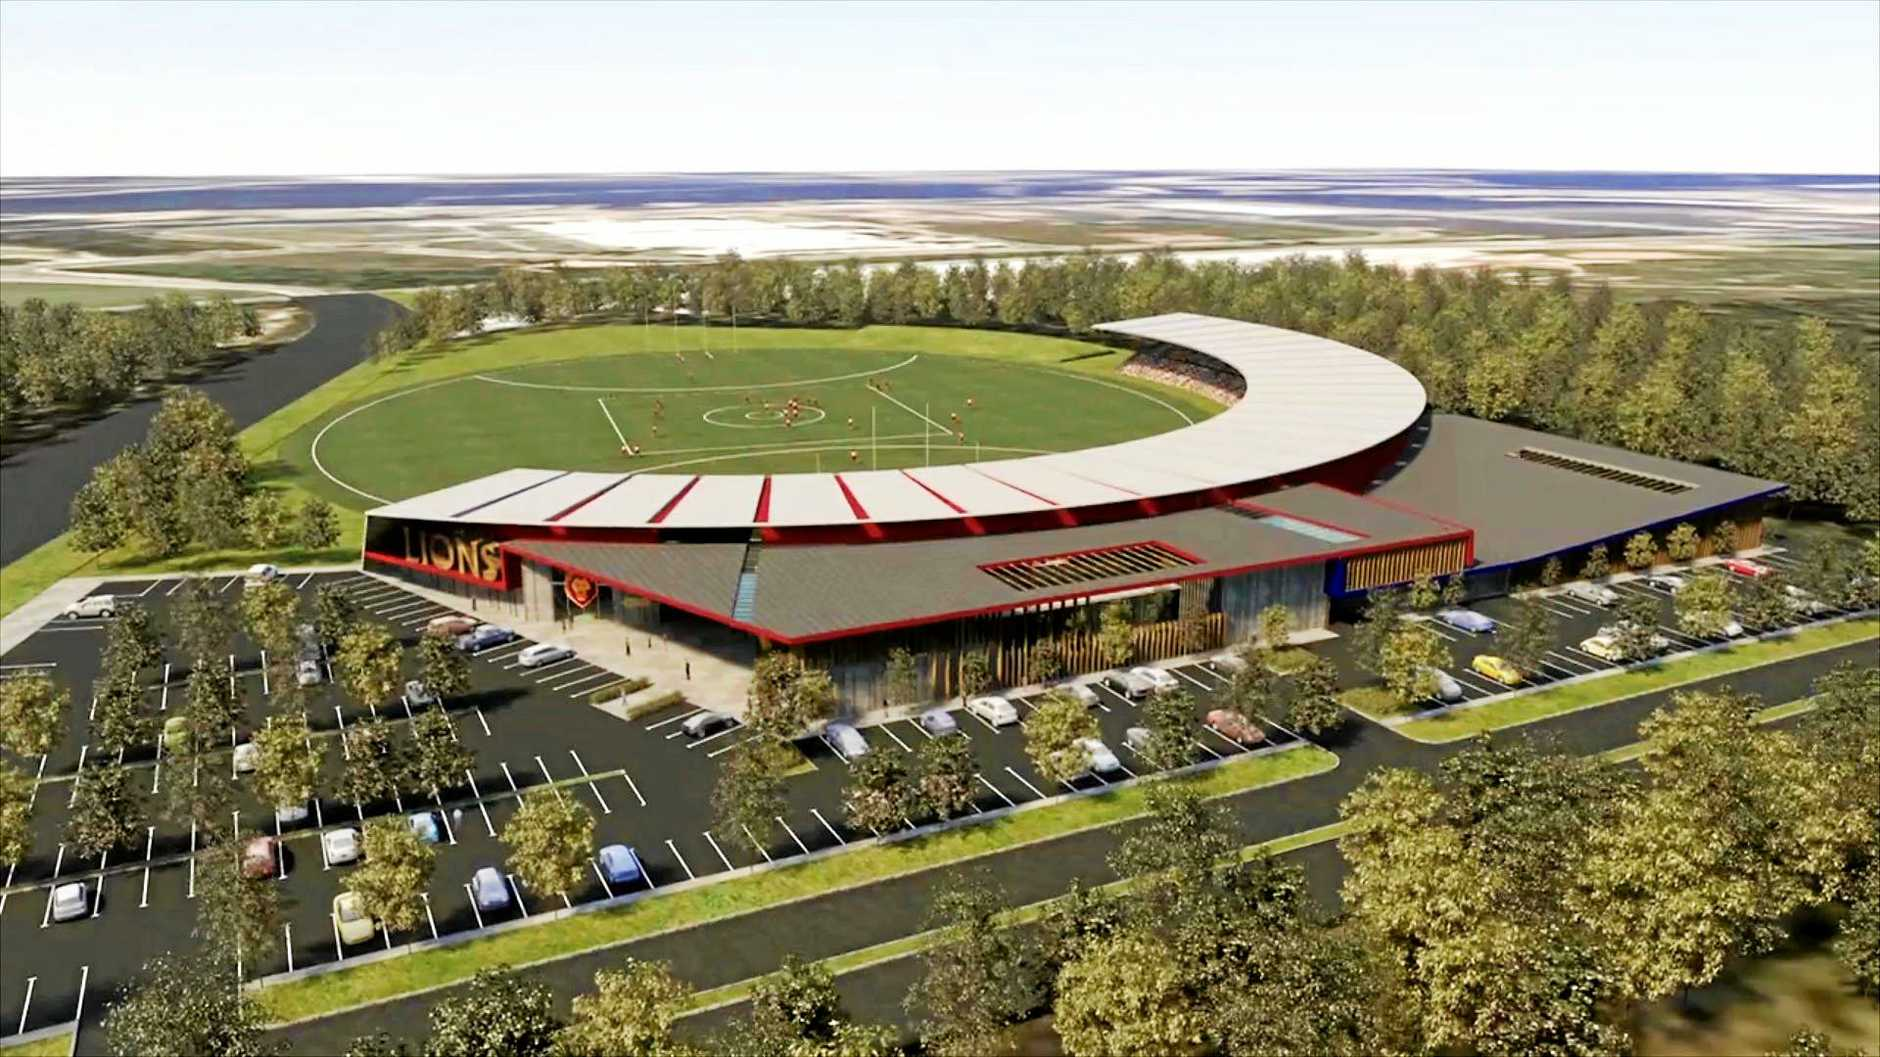 GROWTH: An artist impression of the new Lions stadium at Springfield which the council says will provide economic benefits to surrounding regions.